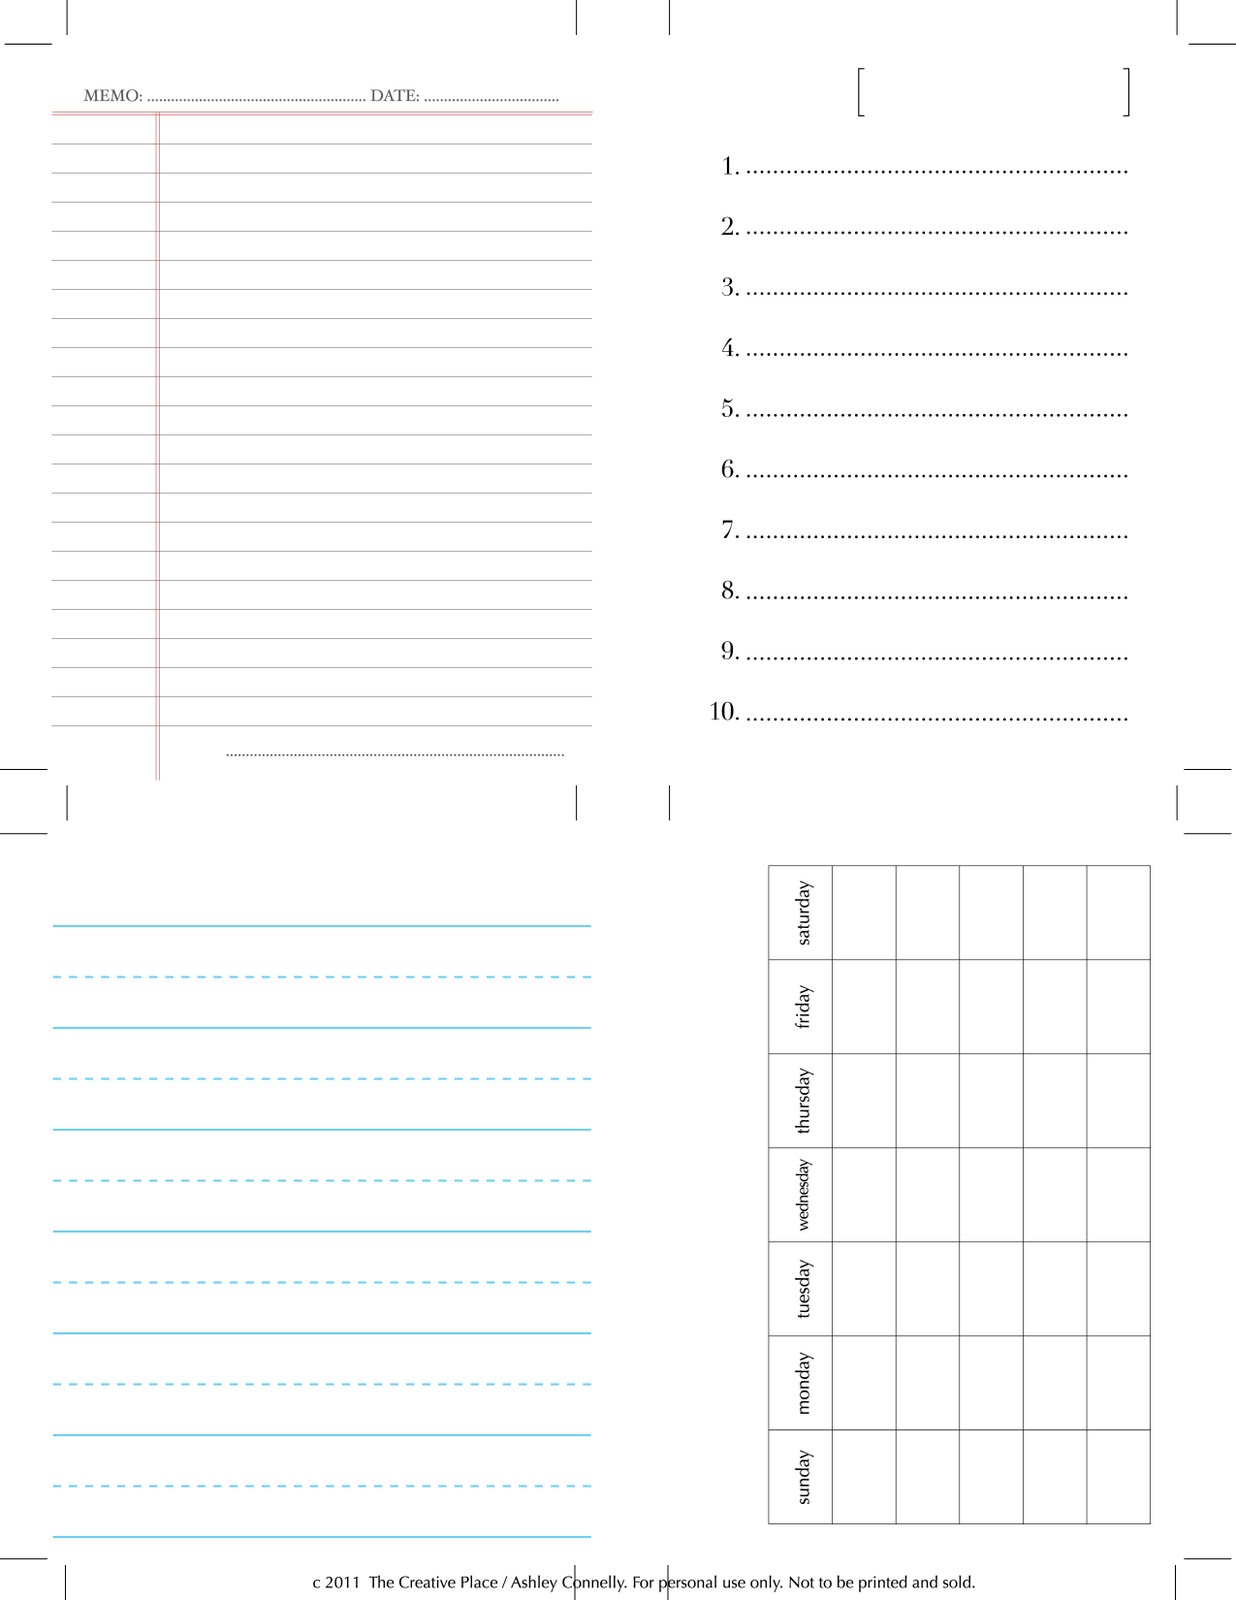 Comfortable 100 Free Resume Builder Thin 1099 Template Excel Shaped 15 Year Old Resume Sample 2 Page Resume Design Youthful 2014 Calendar Template Monthly Coloured2015 Calendar Planner Template Free Printable 2014 Calendar Australia Template | Resume For First Job